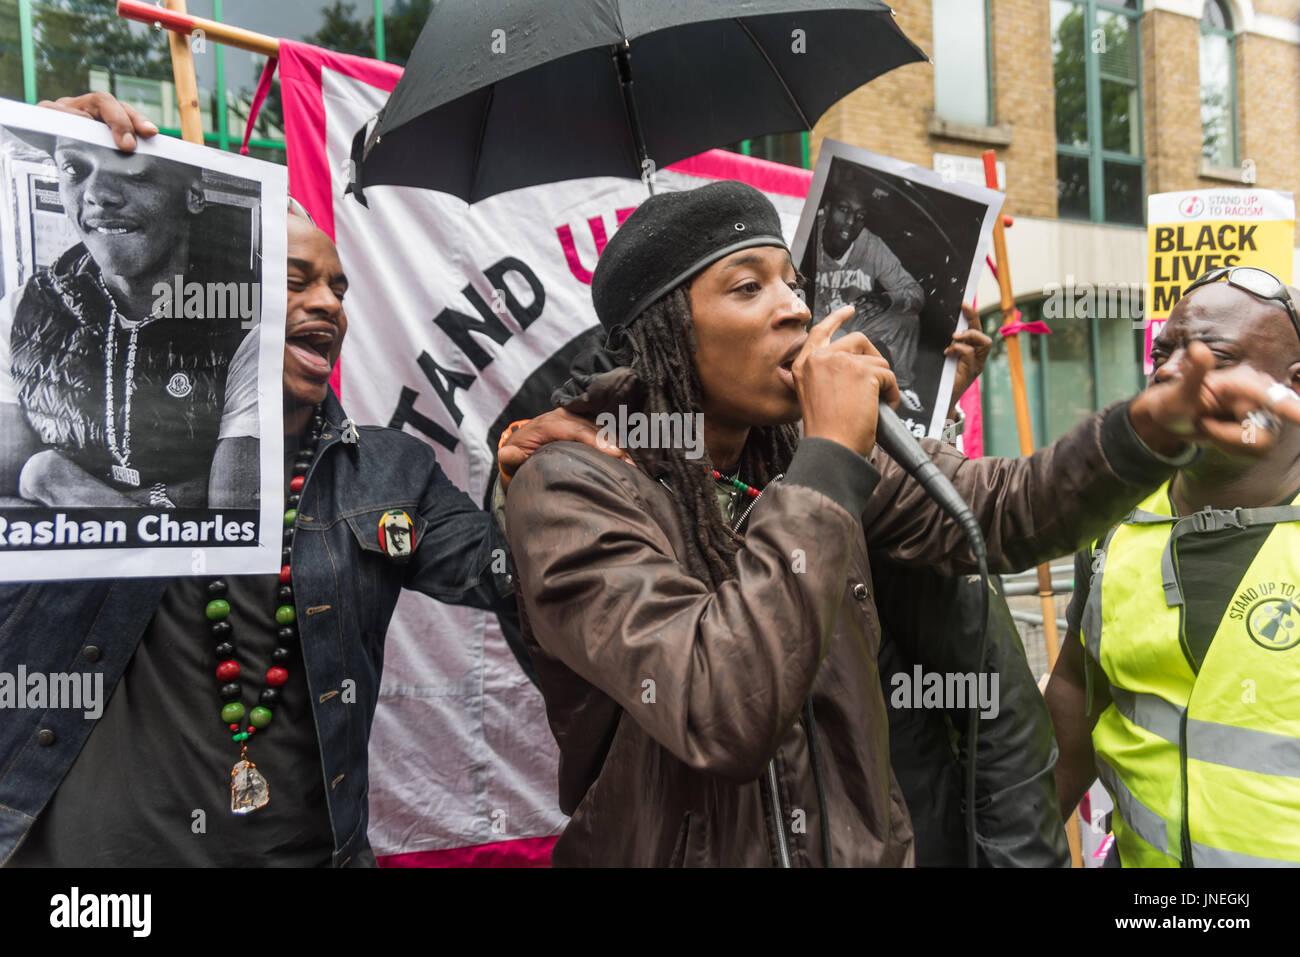 London, UK. 29th July, 2017. London, UK. 29th July 2017. A young man from the community speaks at the protest outside - Stock Image